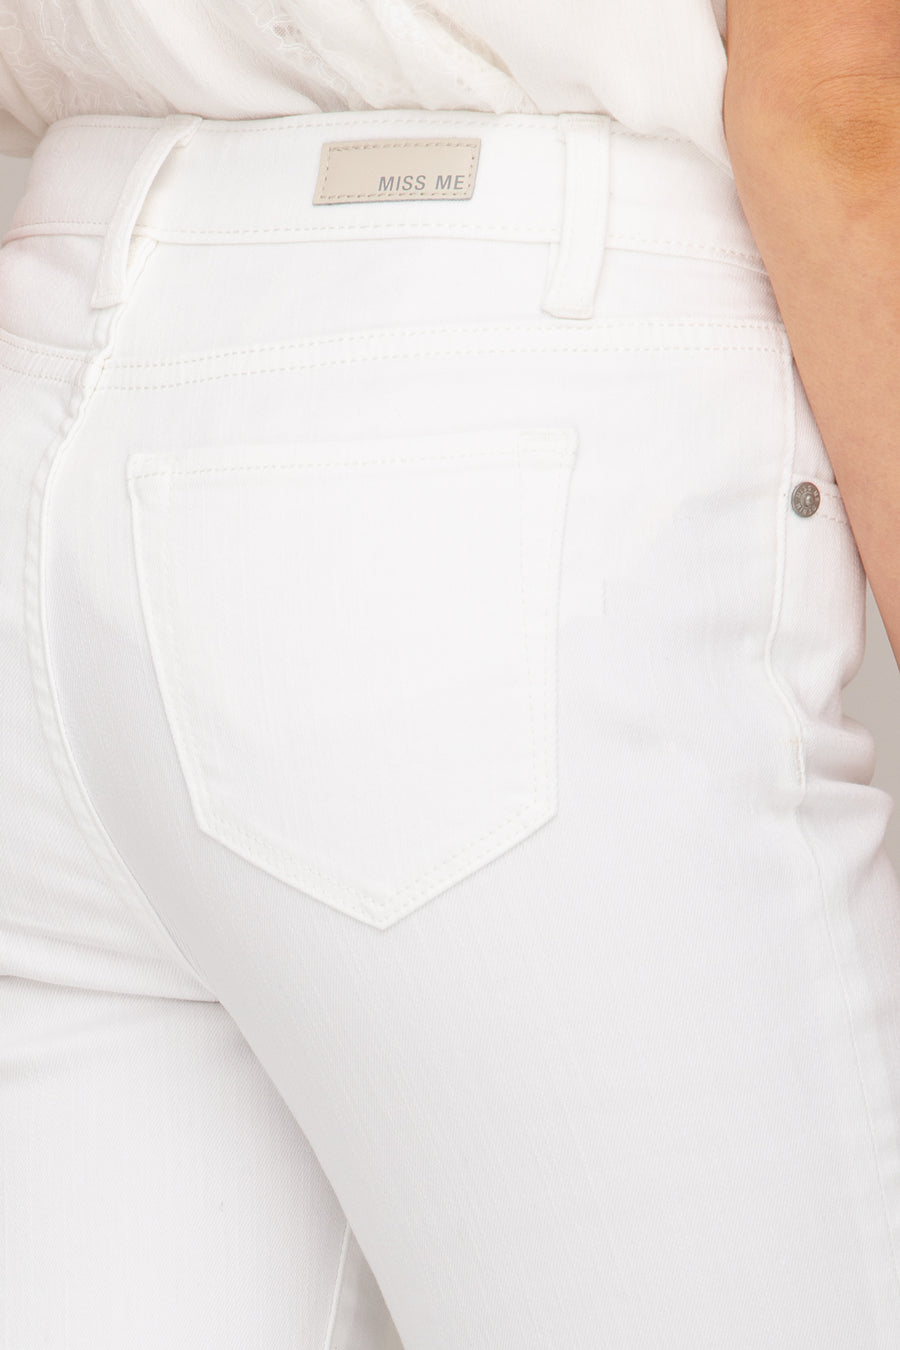 pocket, White